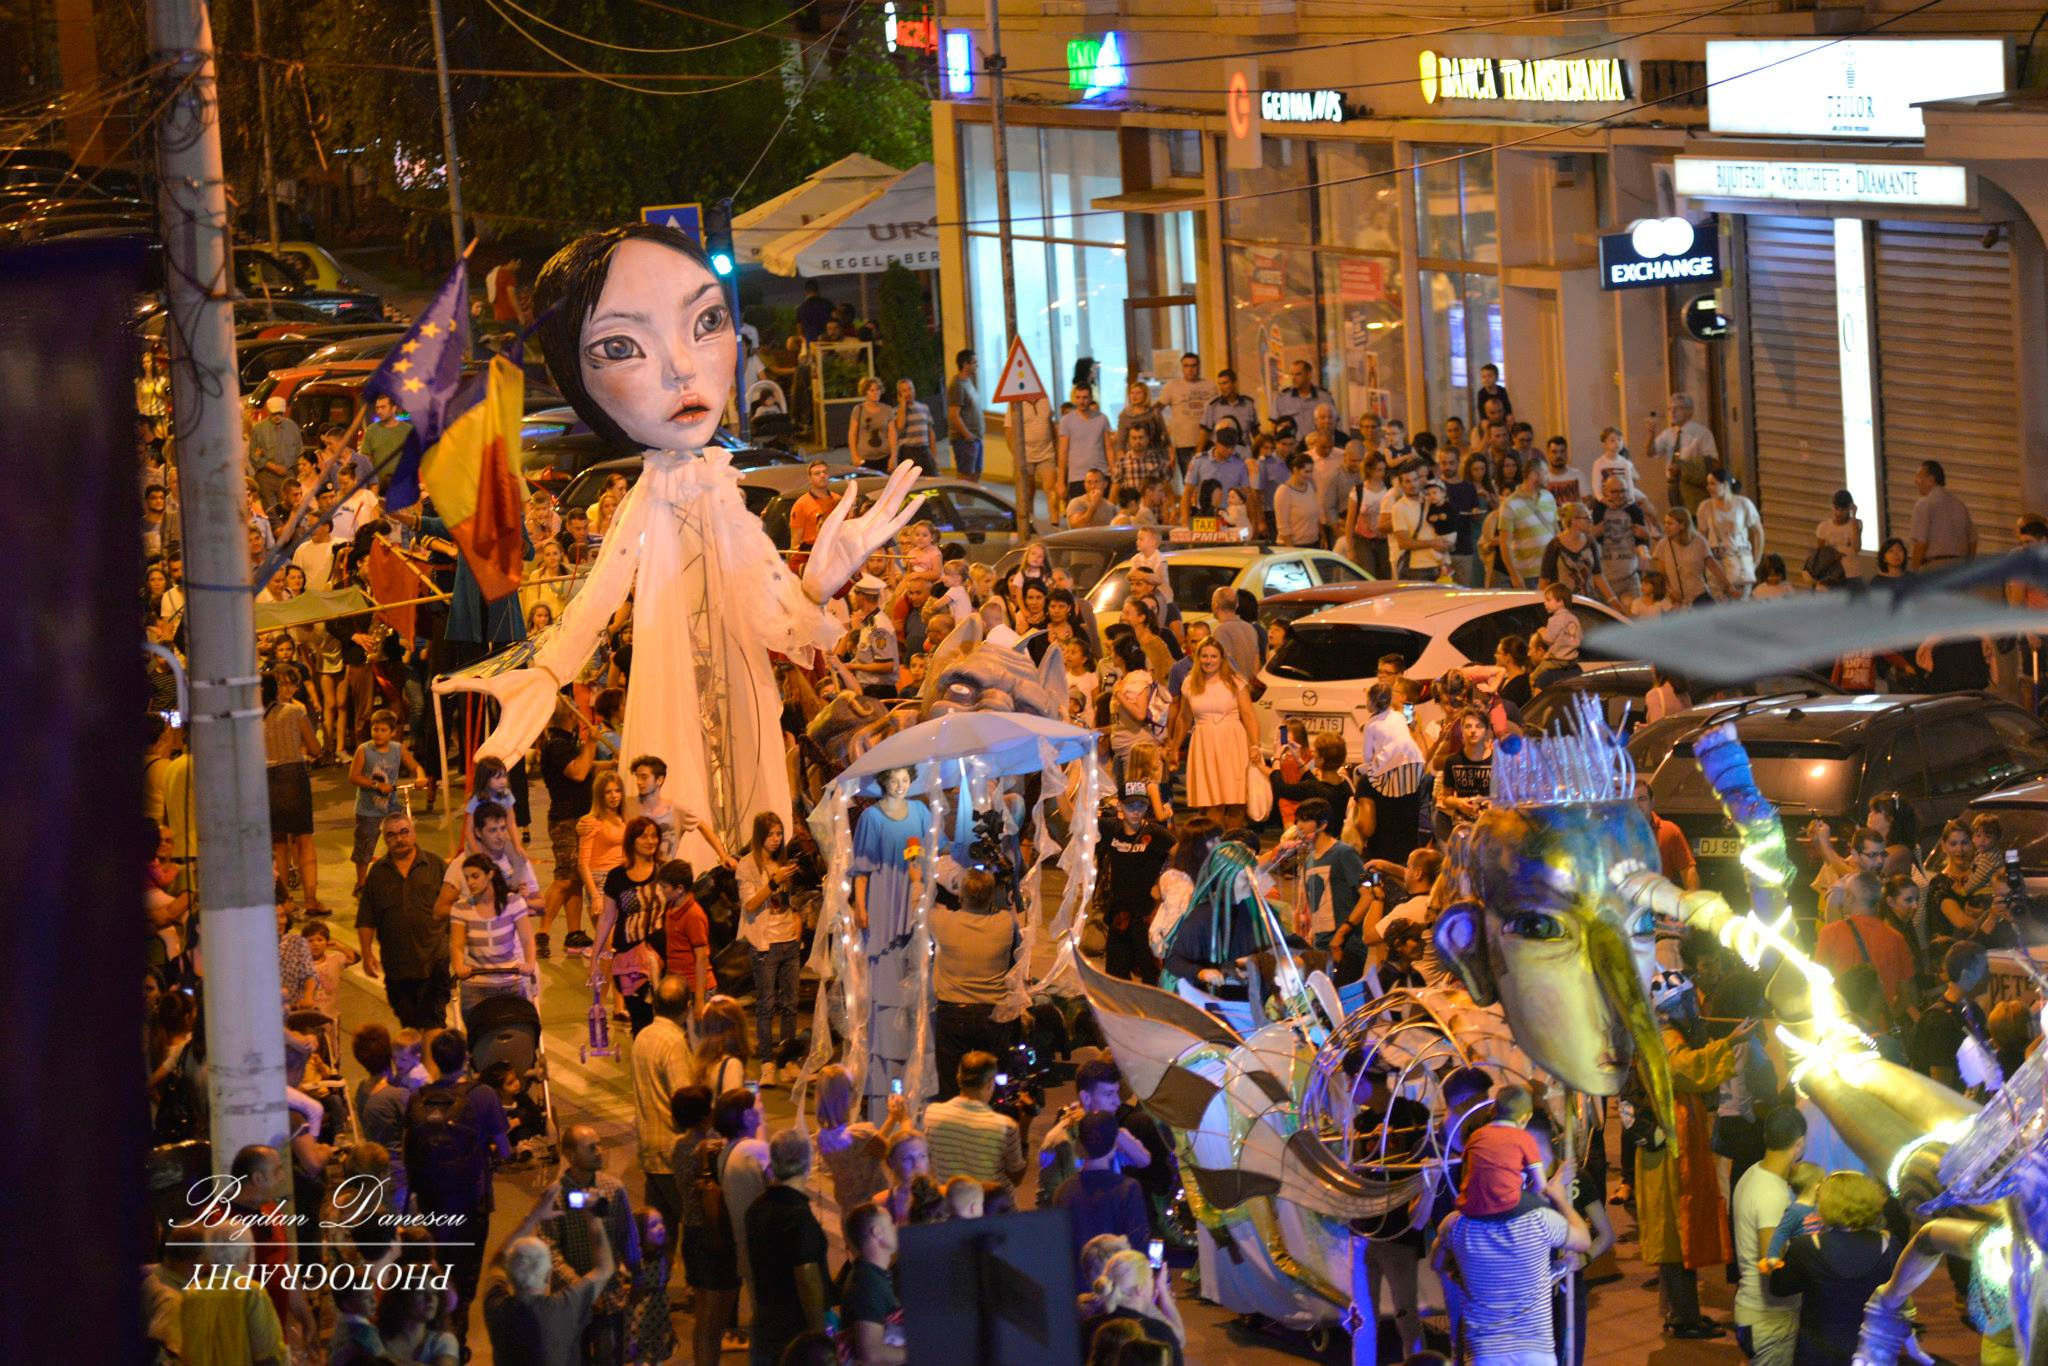 FESTIVALUL PUPPETS OCCUPY STREET,  Ediţia a IV – a, Air Edition,  Craiova, 25 august – 1 septembrie 2017